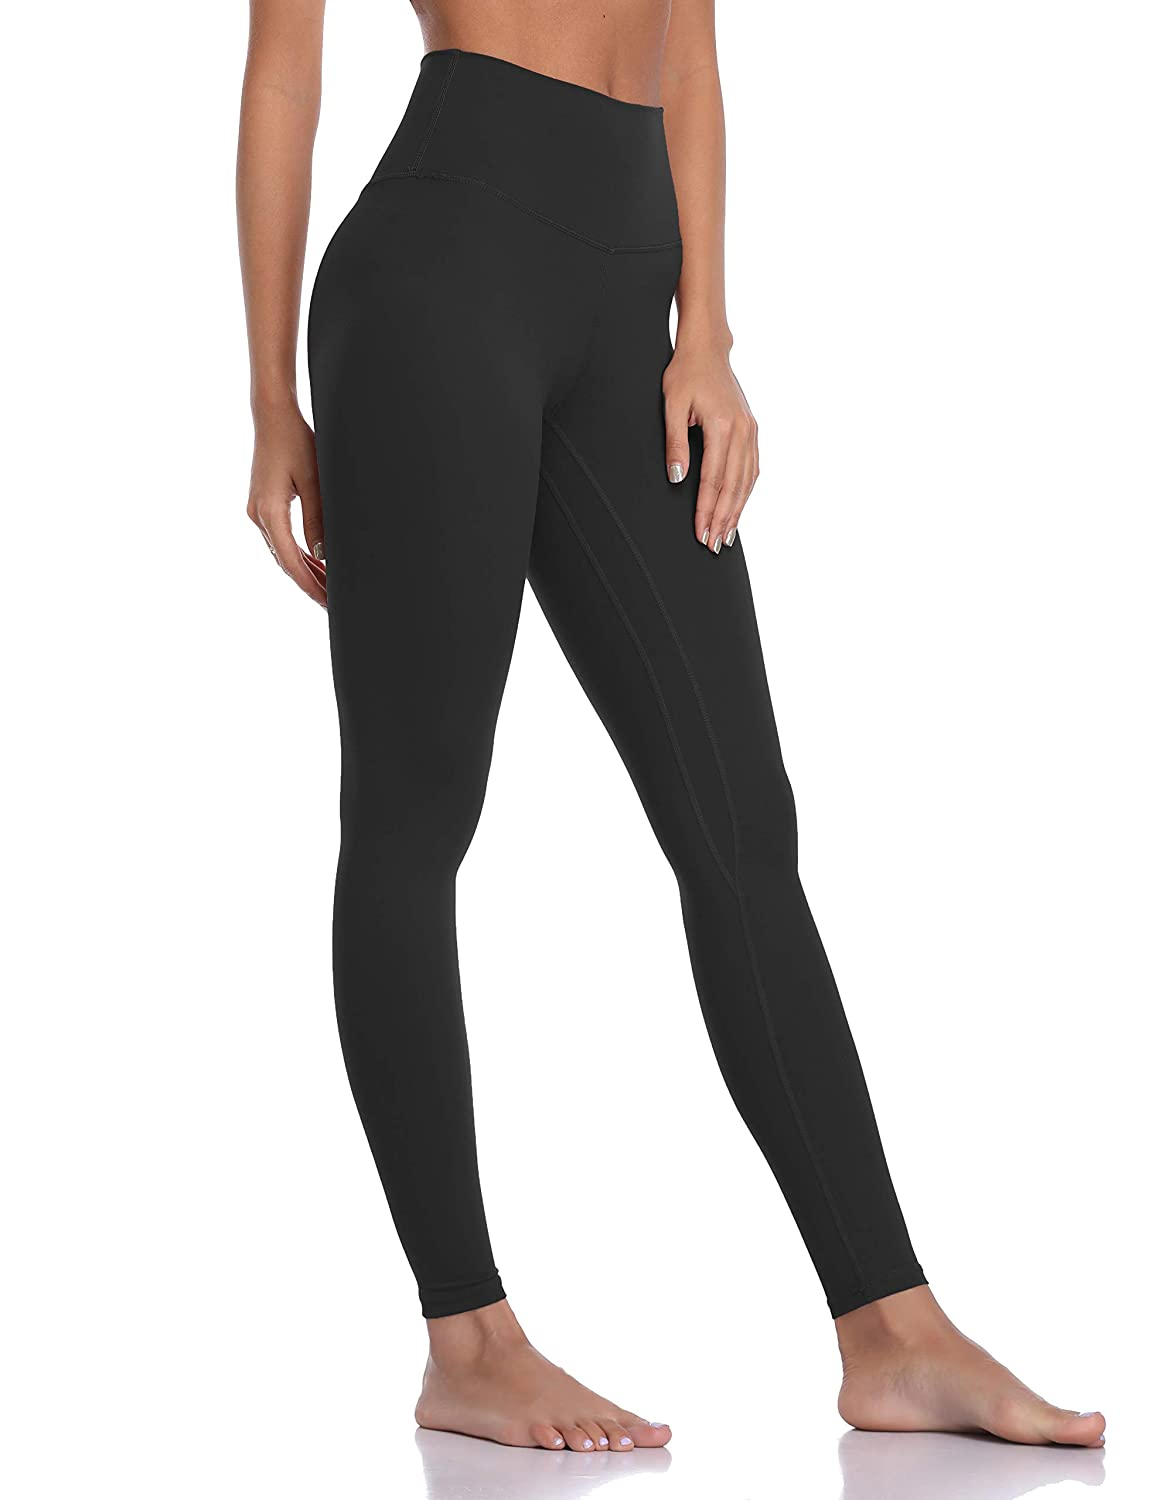 5f8877e6b88c3 Amazon.com: Colorfulkoala Women's Brushed Buttery Soft High Waisted Leggings  Full Length Yoga Pants: Clothing